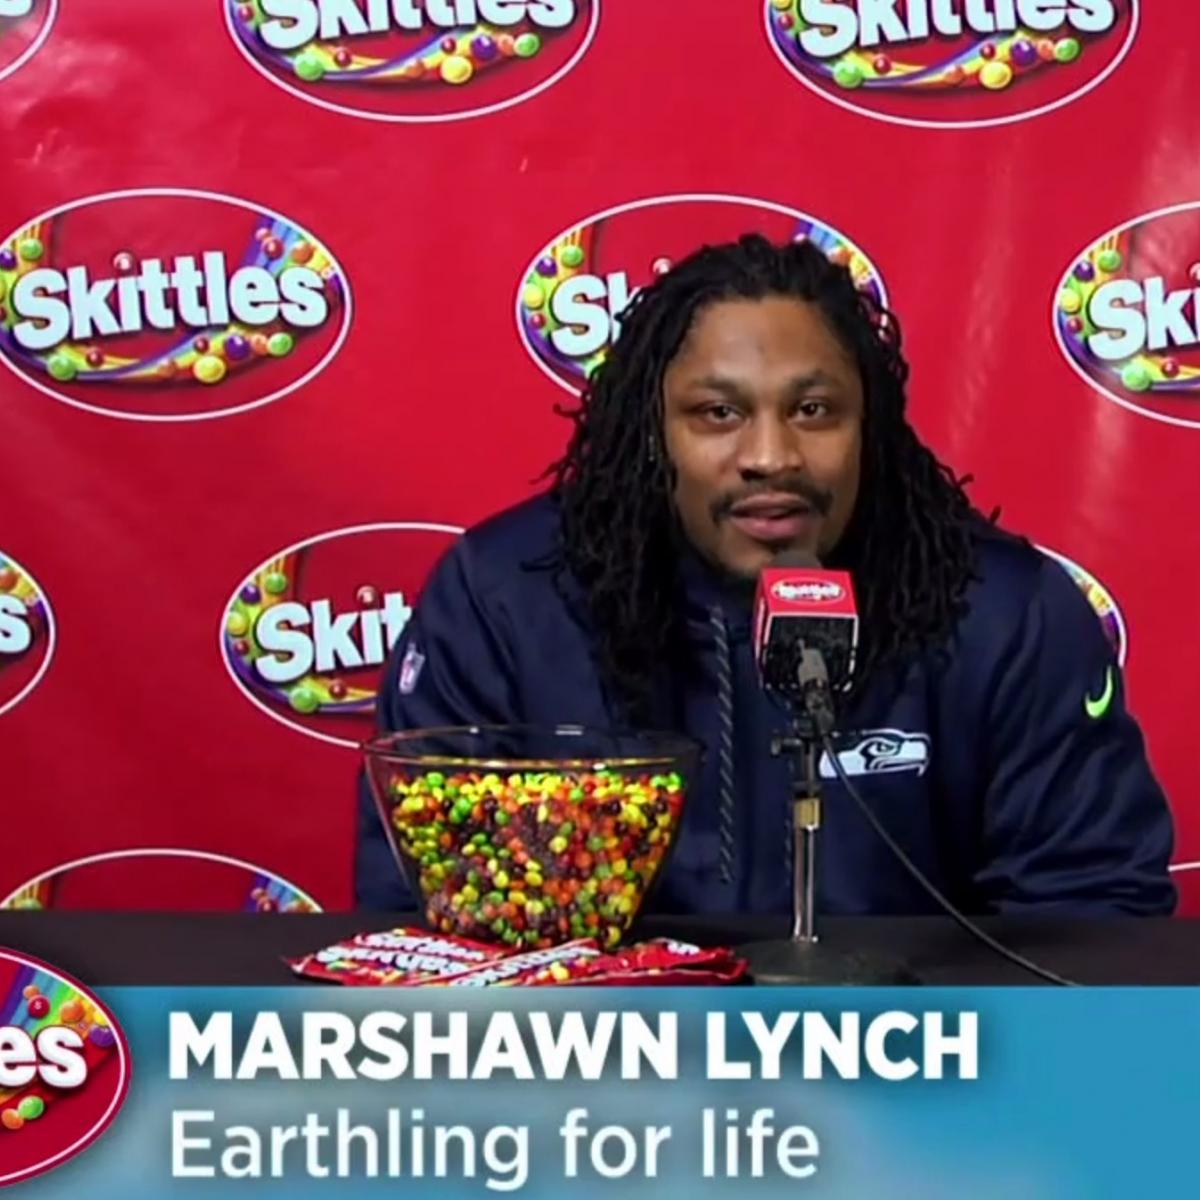 Marshawn Lynch Finally Talks To The Media In Skittles